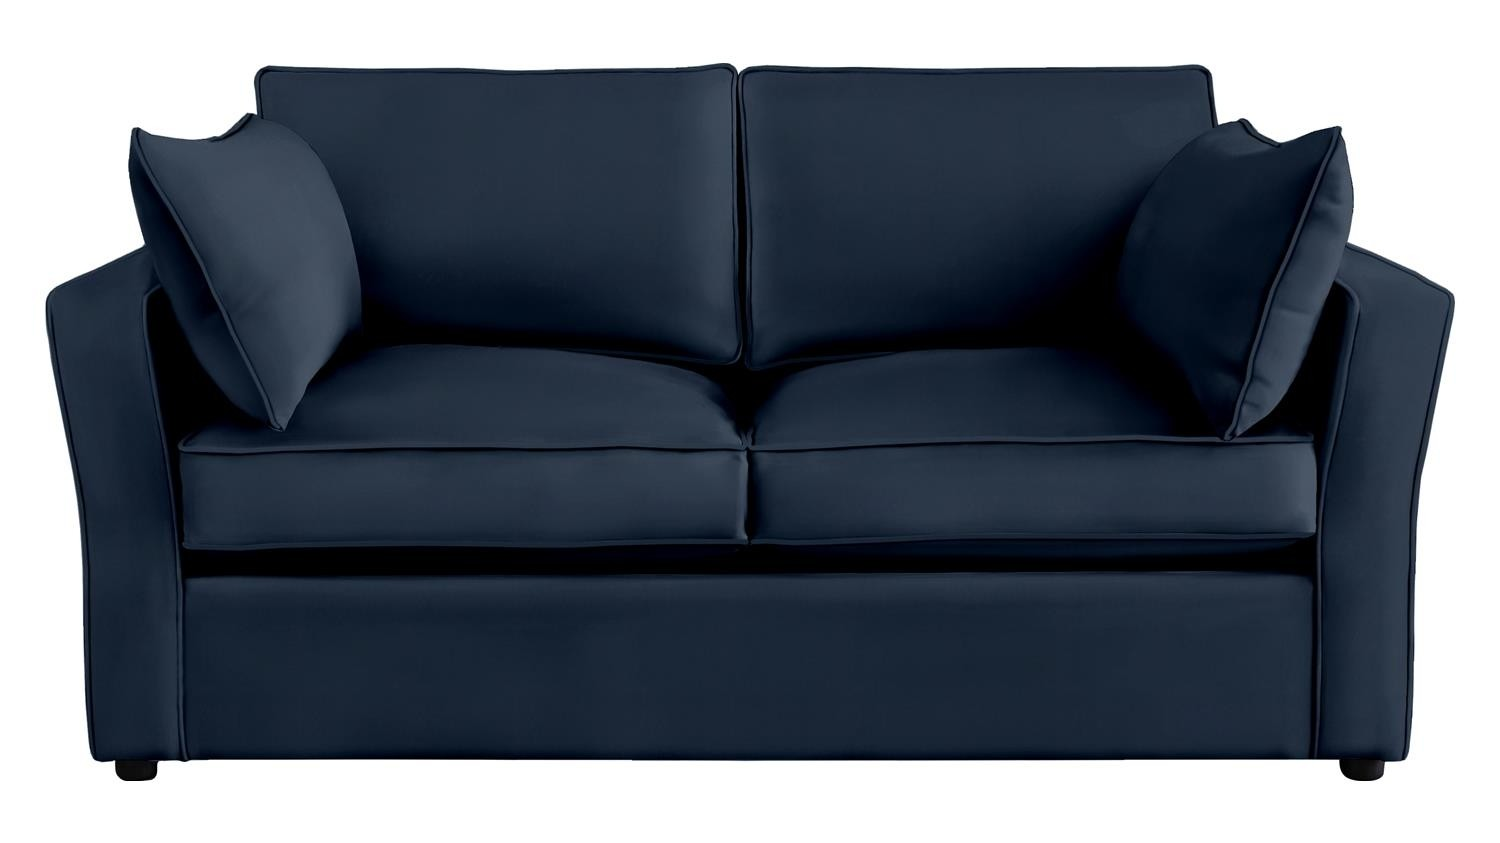 The Amesbury 3 Seater Sofa Bed